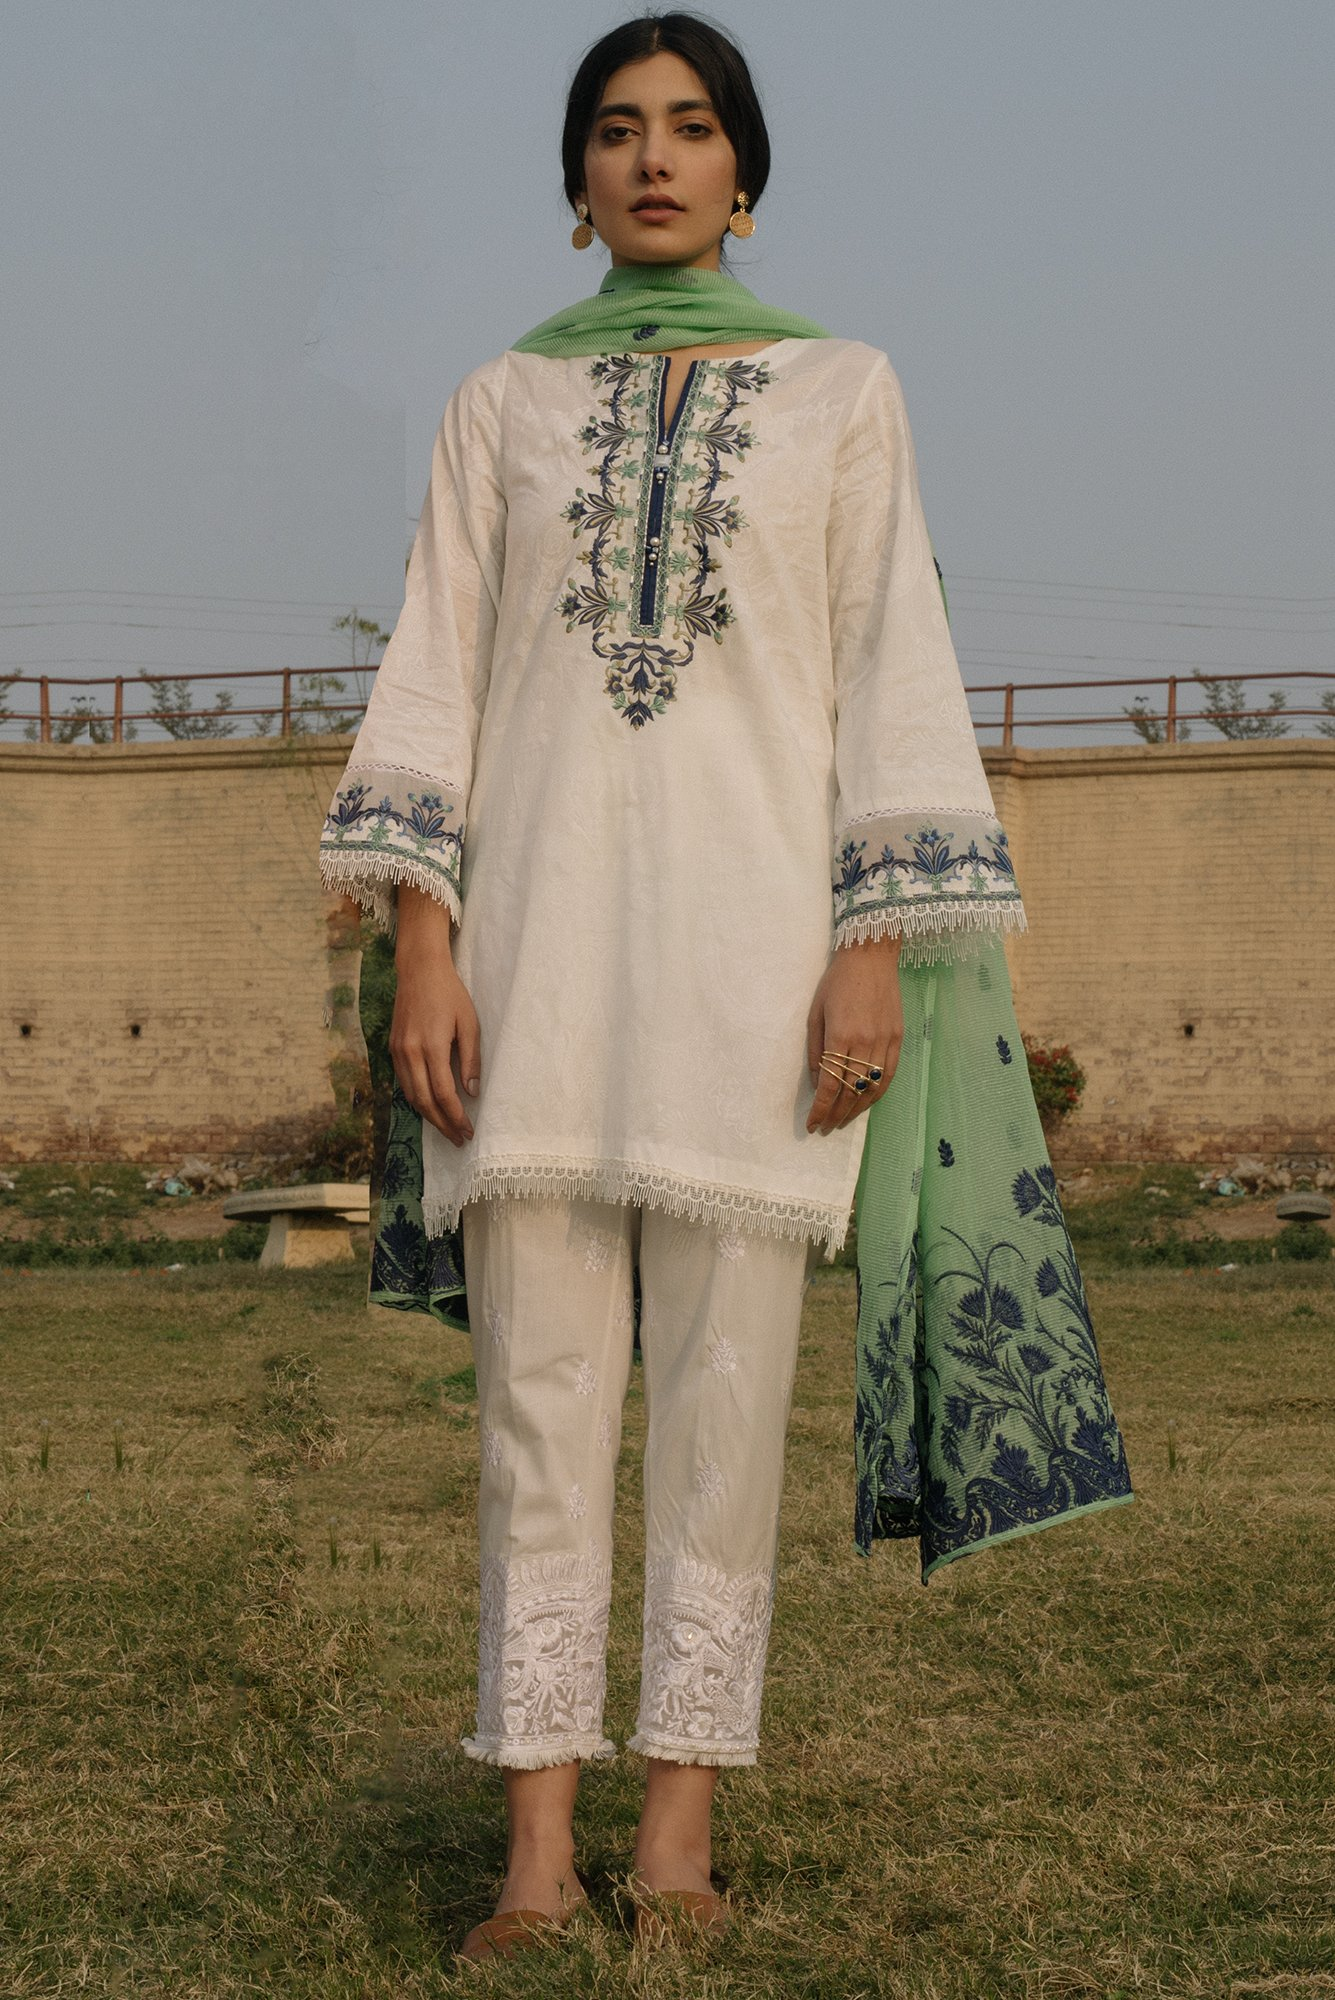 White Ladies Shalwar Kameez Latest White Dresses Trends Shalwar